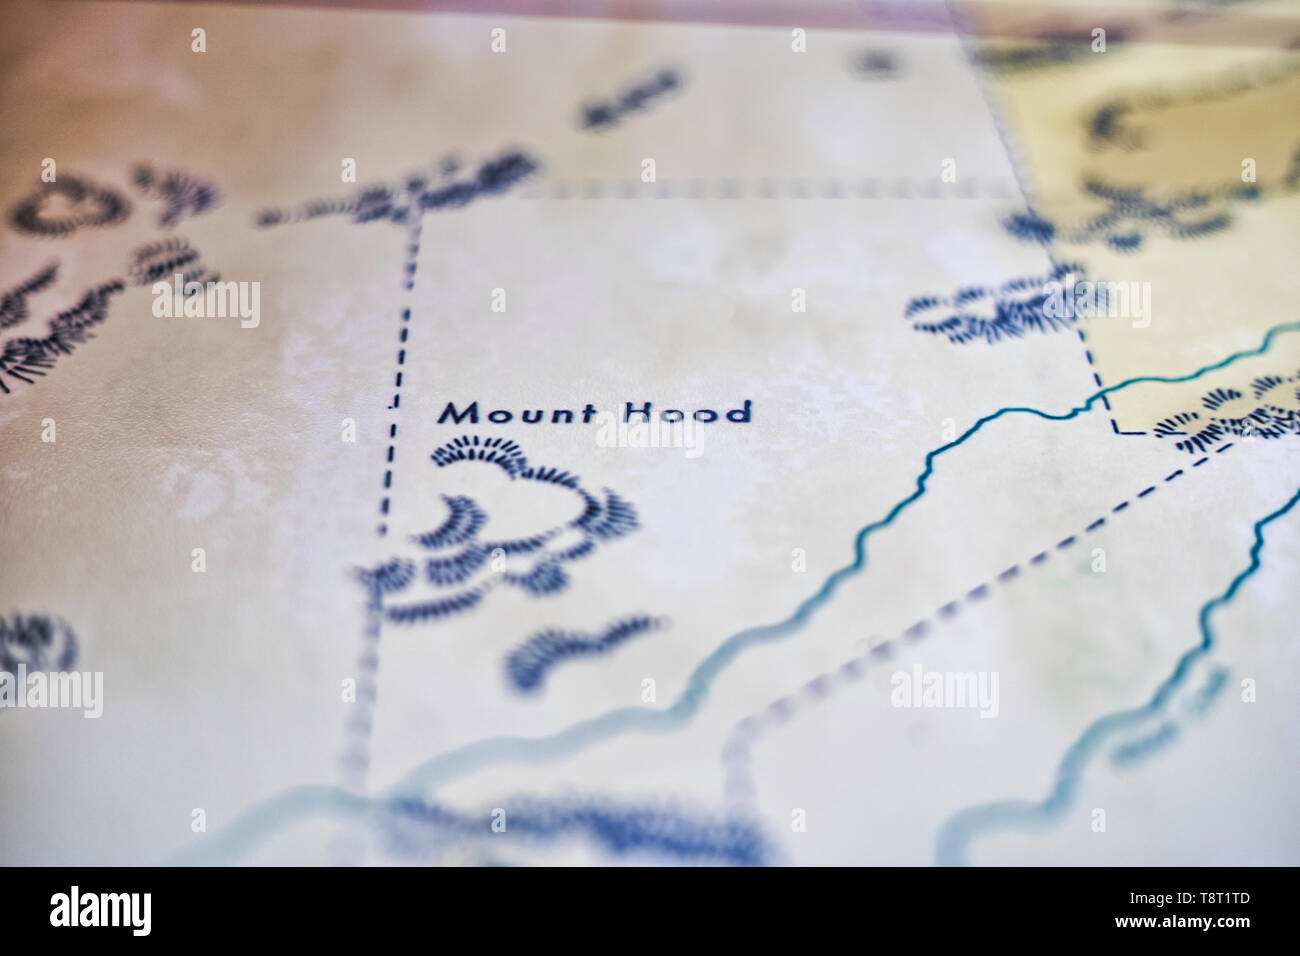 Close up of a topographical road map in Disney's Cars Universe - Mount Hood - Stock Image